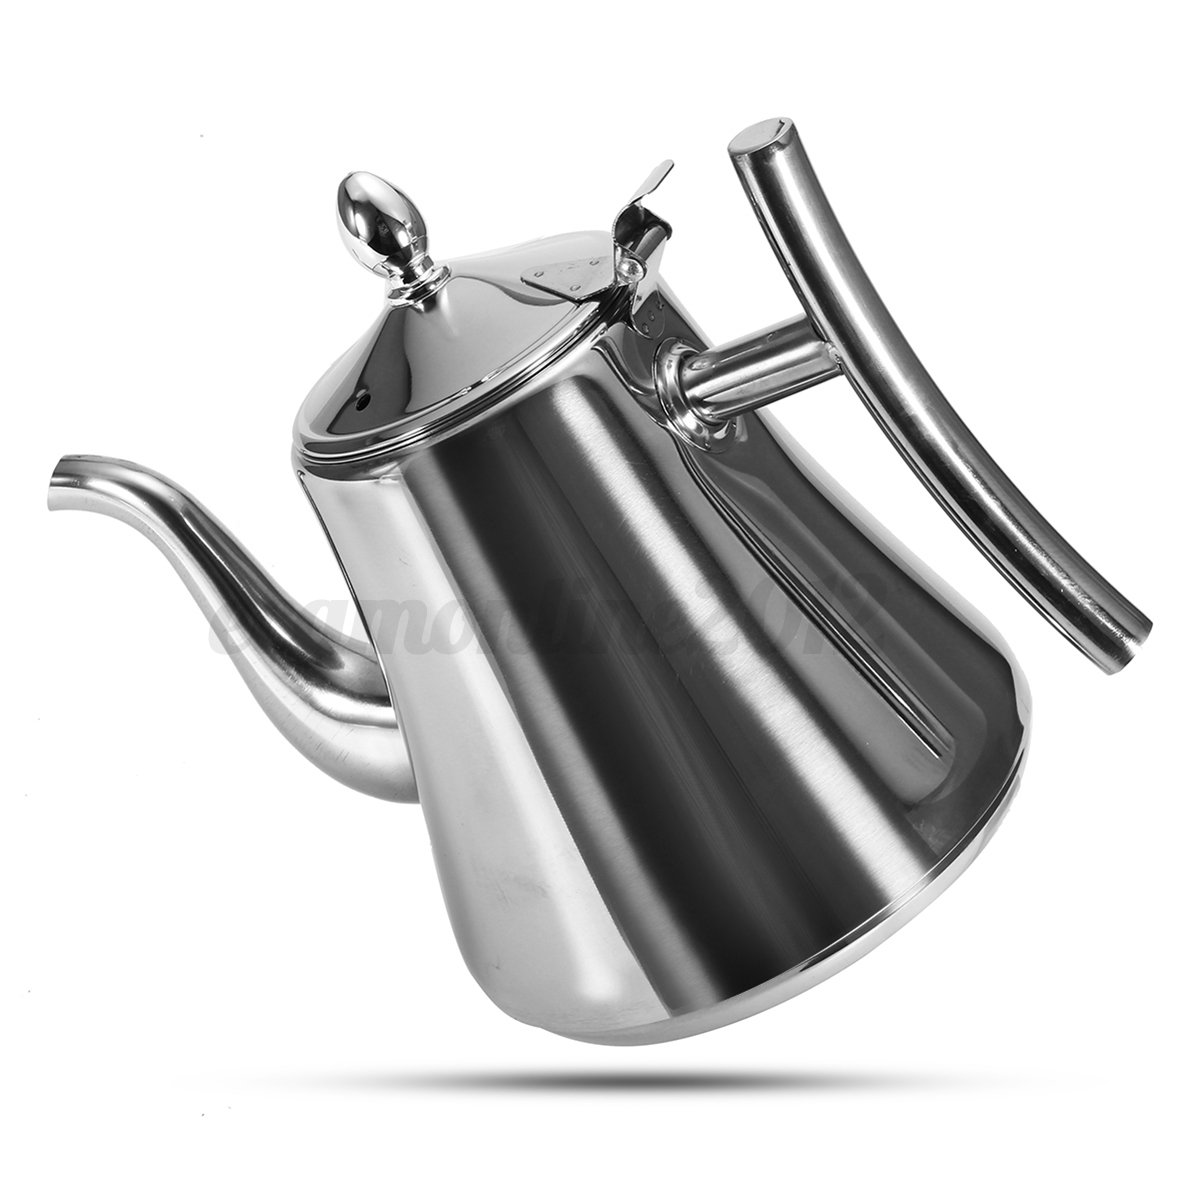 Tea Kettle With Strainer Stainless Steel Teapot Coffee Tea Pot Water Kettle With